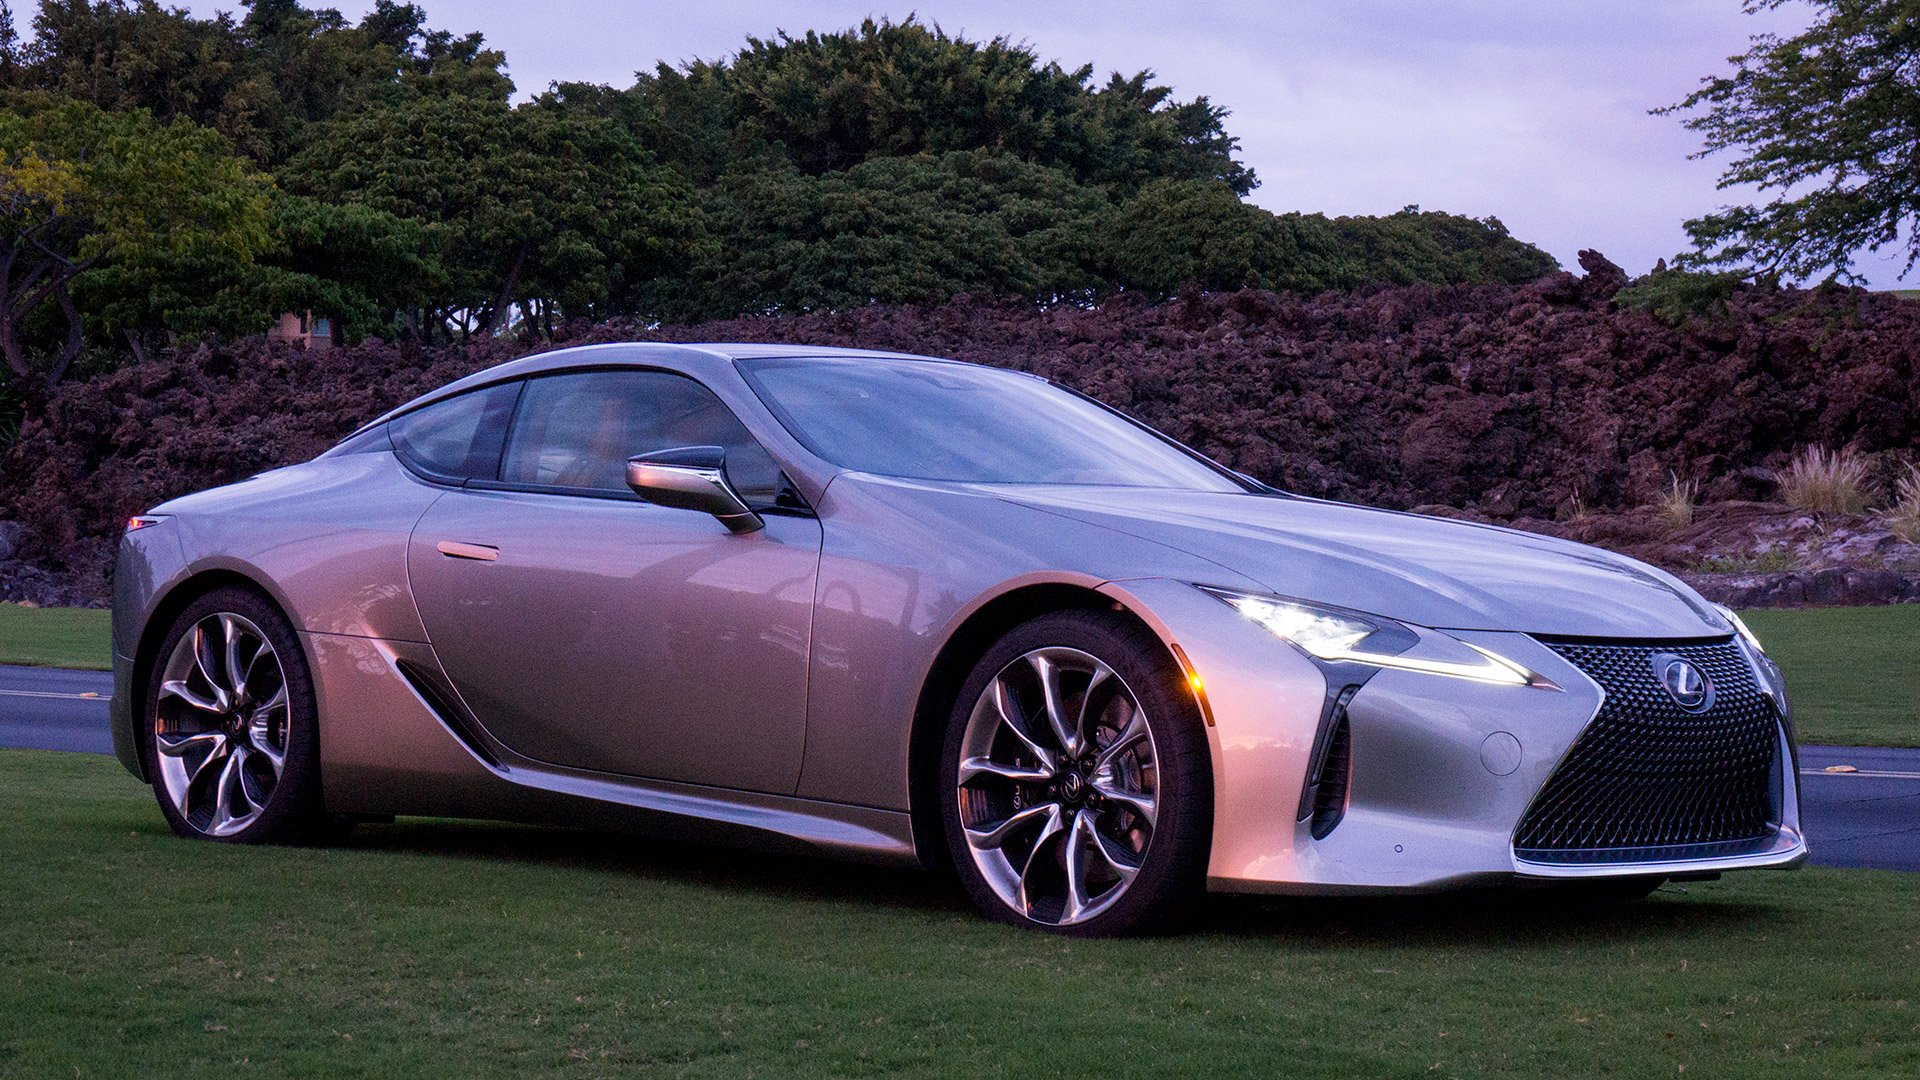 2018 Lexus LC 500: Lexus Moves Into the Fast Lane - 95 Octane